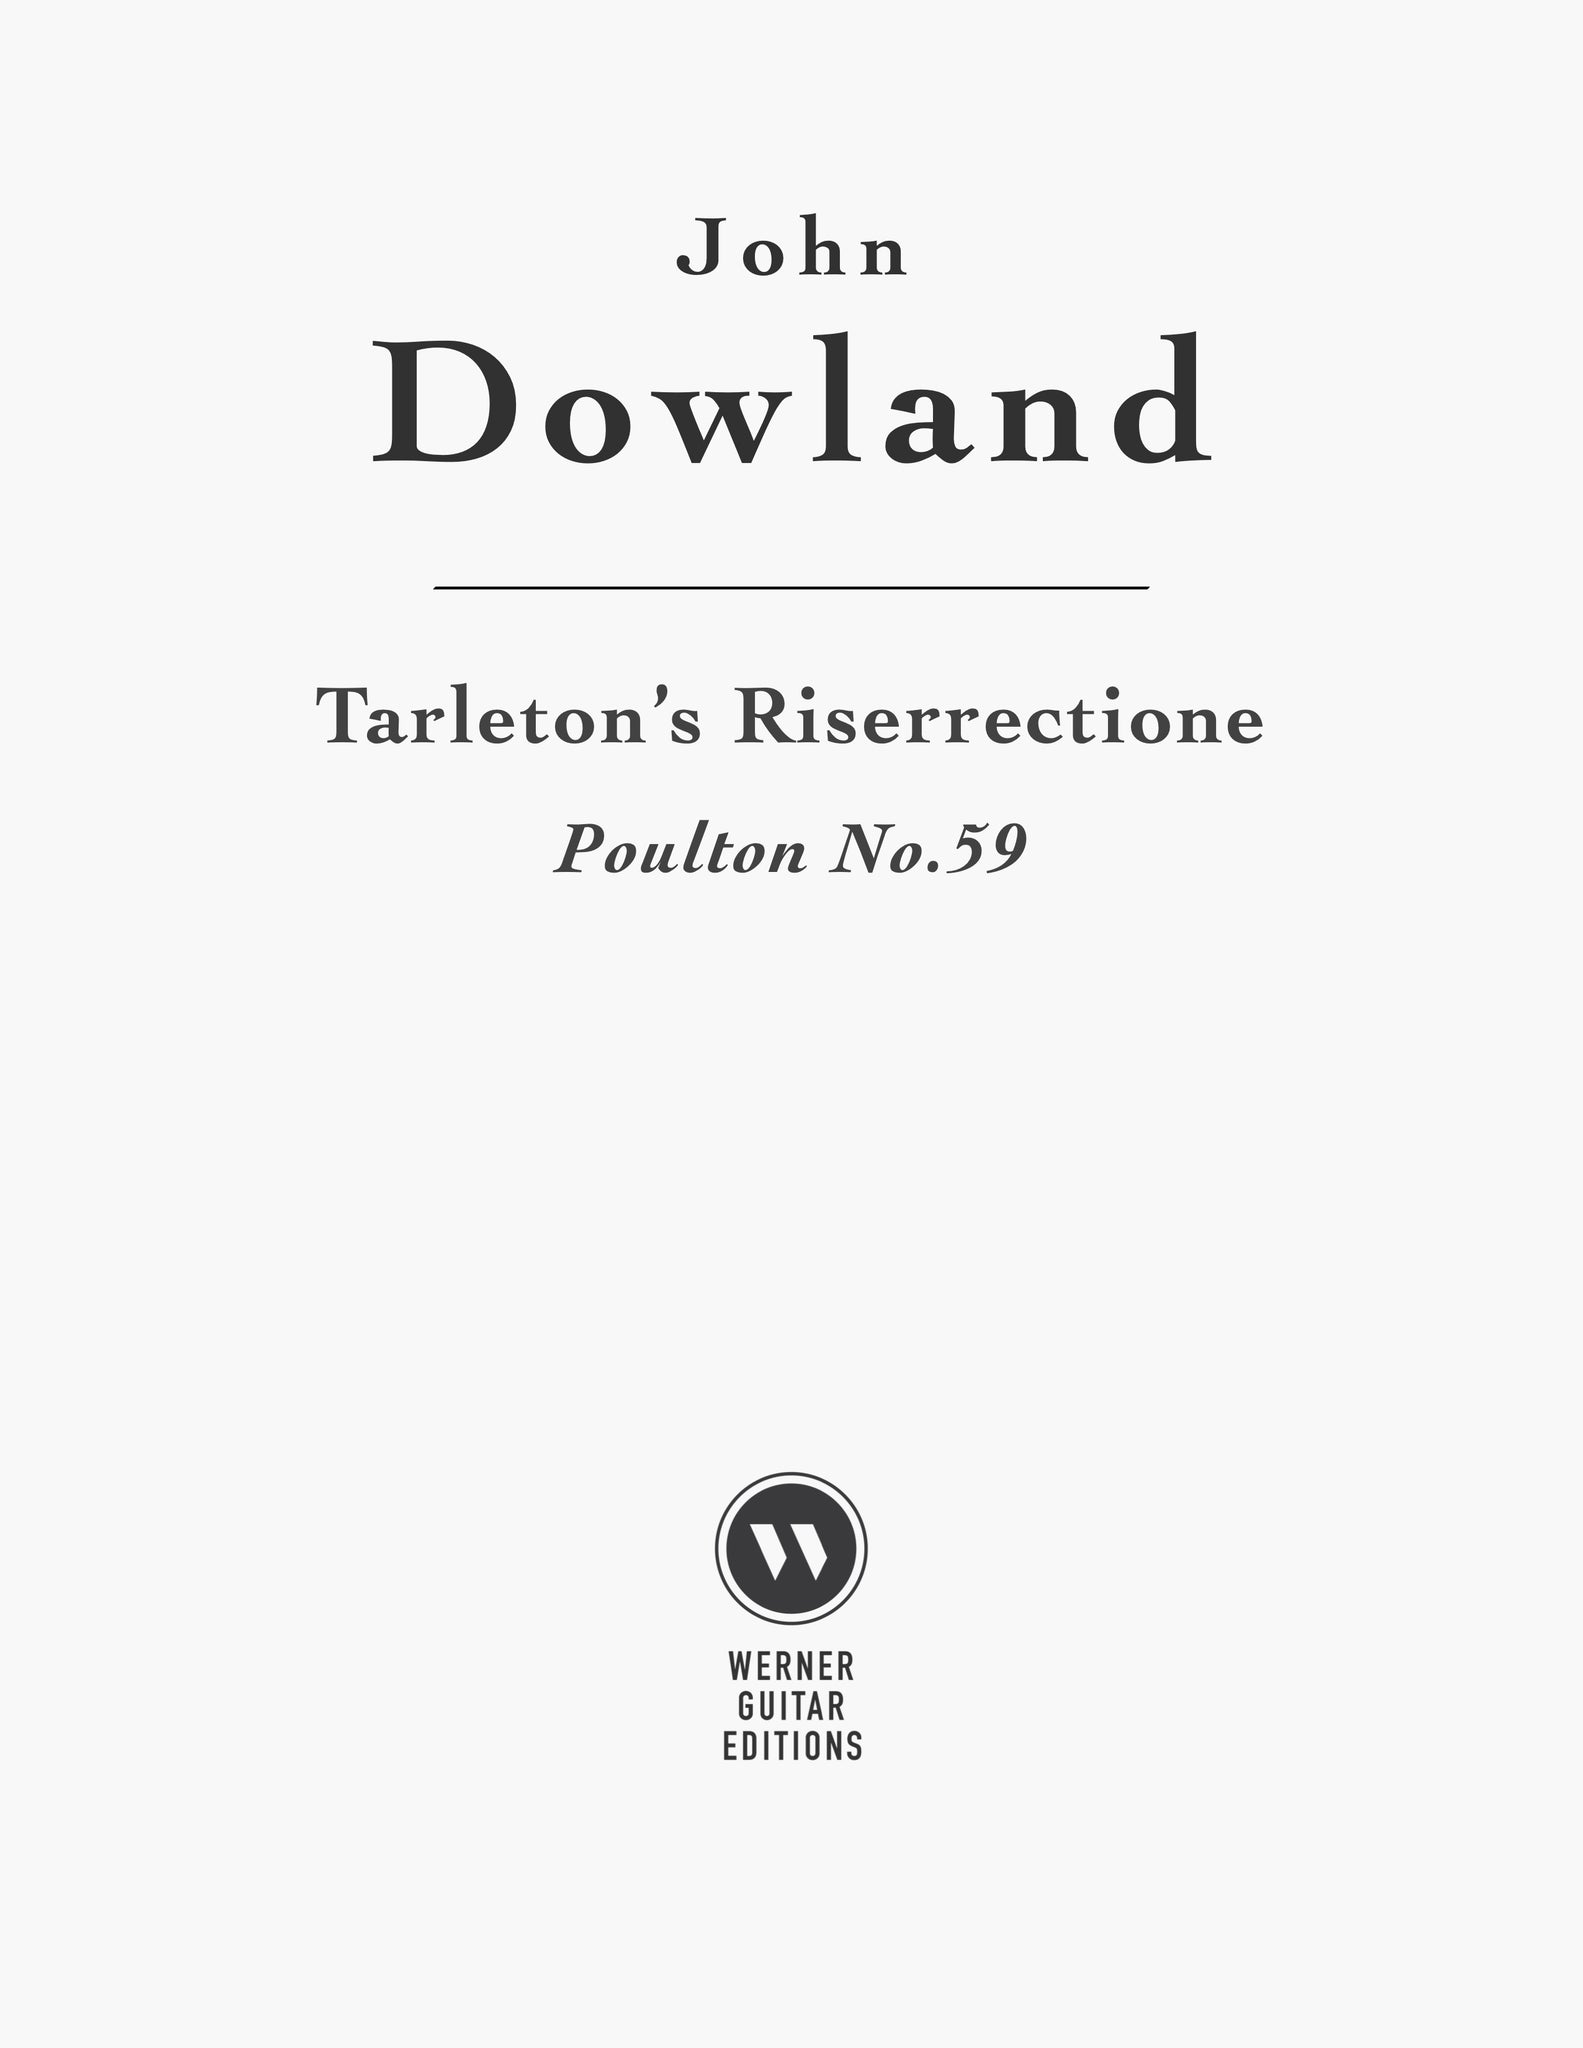 Tarleton's Riserrectione by Dowland (PDF Sheet Music and TAB)